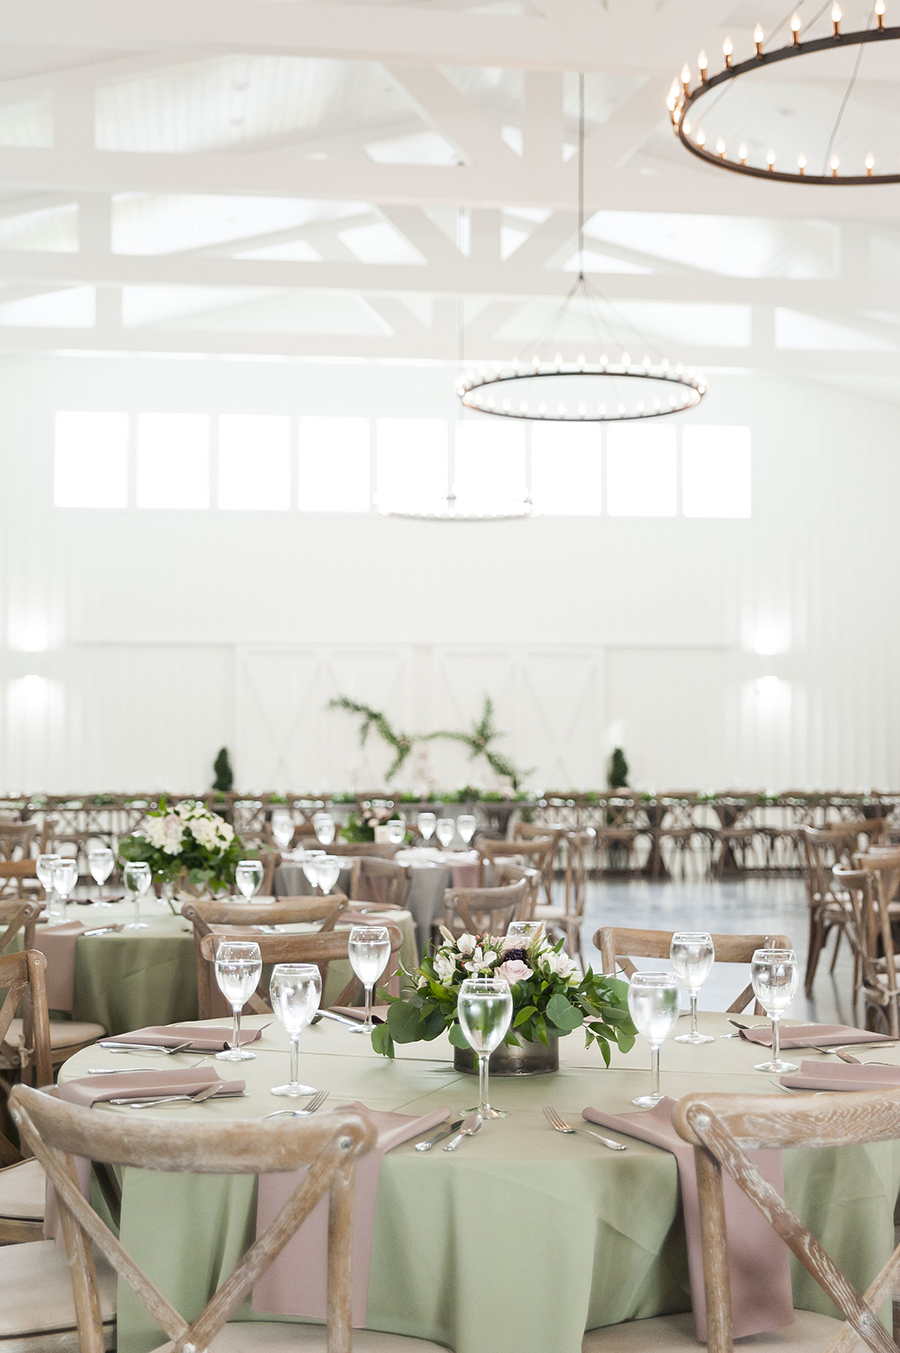 houston, rustic wedding, real wedding inspiration, barn house, all white venue, naked cake